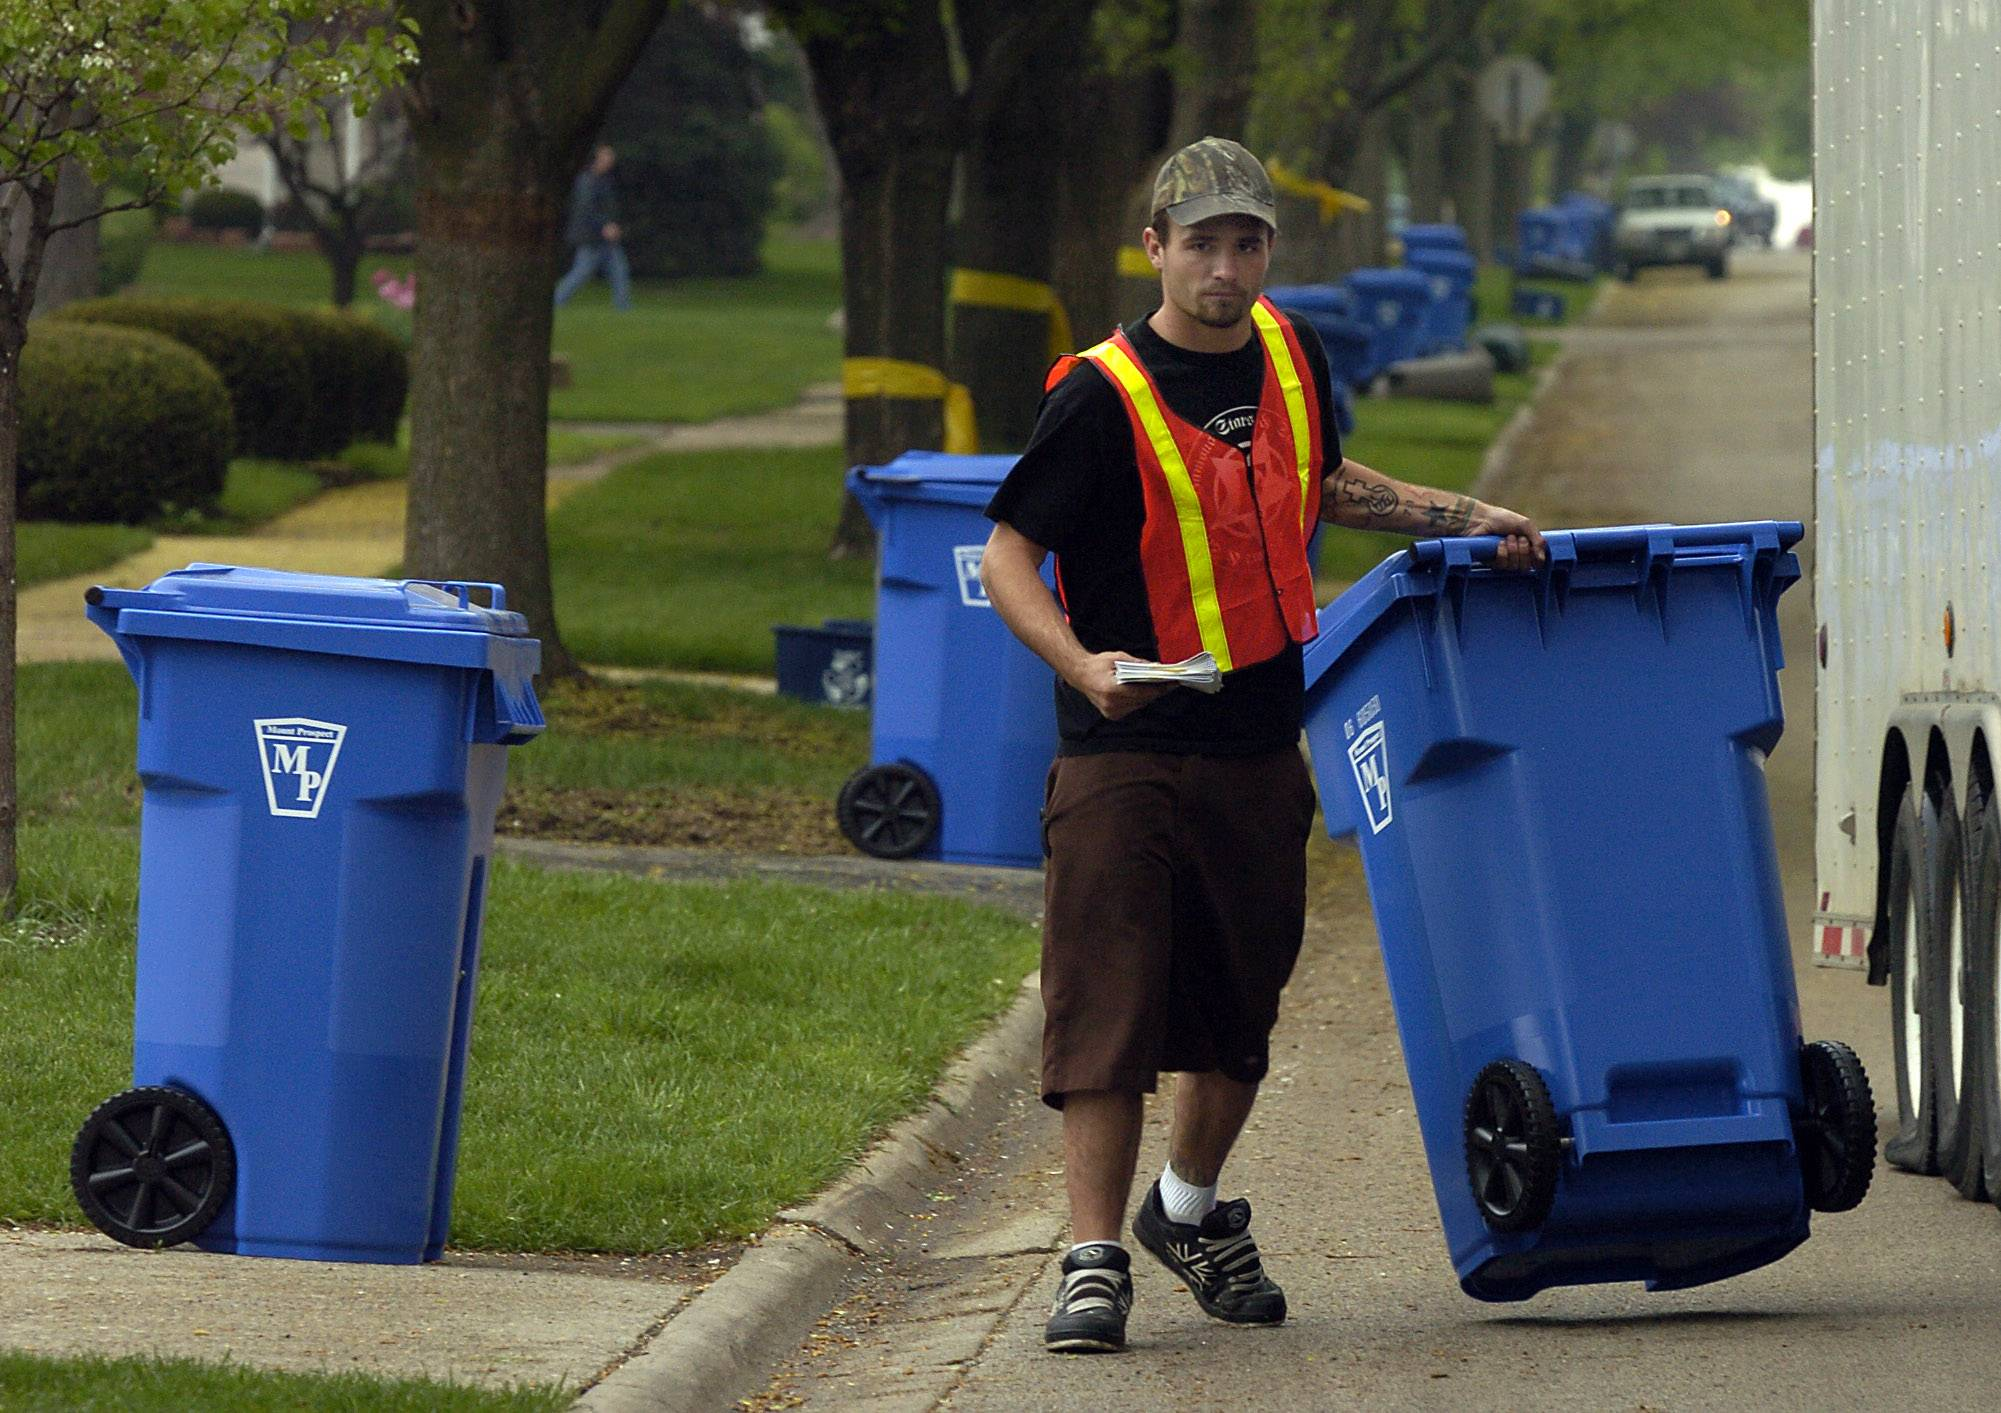 Editorial: Let's up our game on recycling